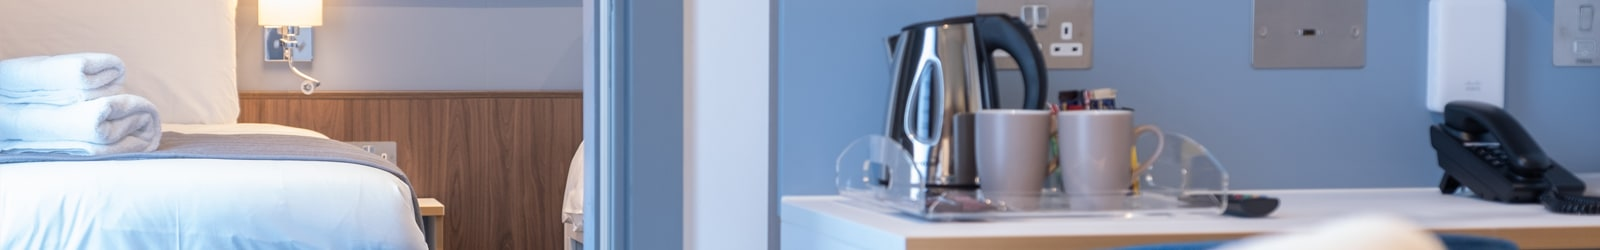 Accessible Altitude Bedroom Banner 2